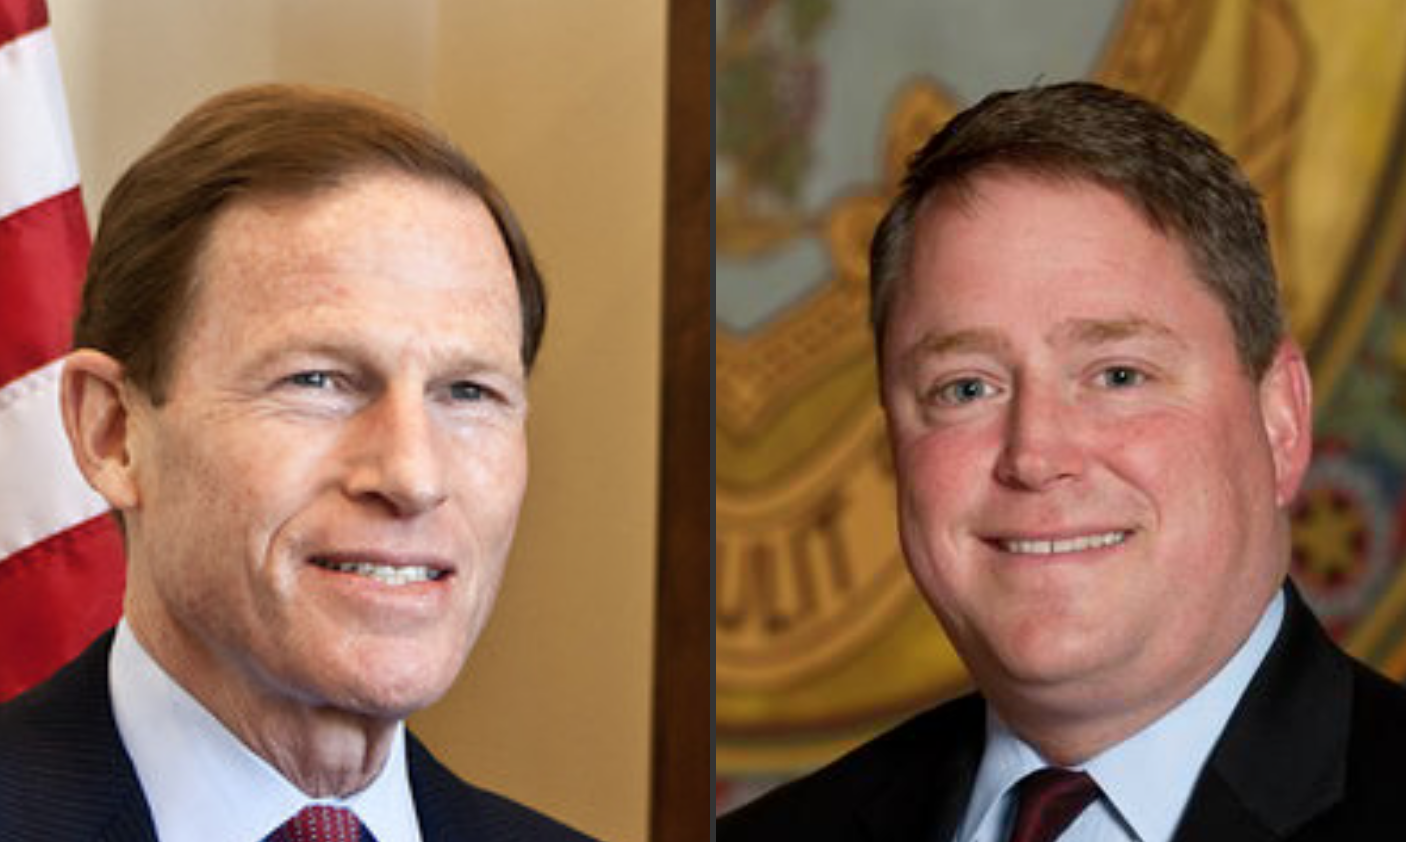 Blumenthal-Carter contest a quiet race in a stormy election year